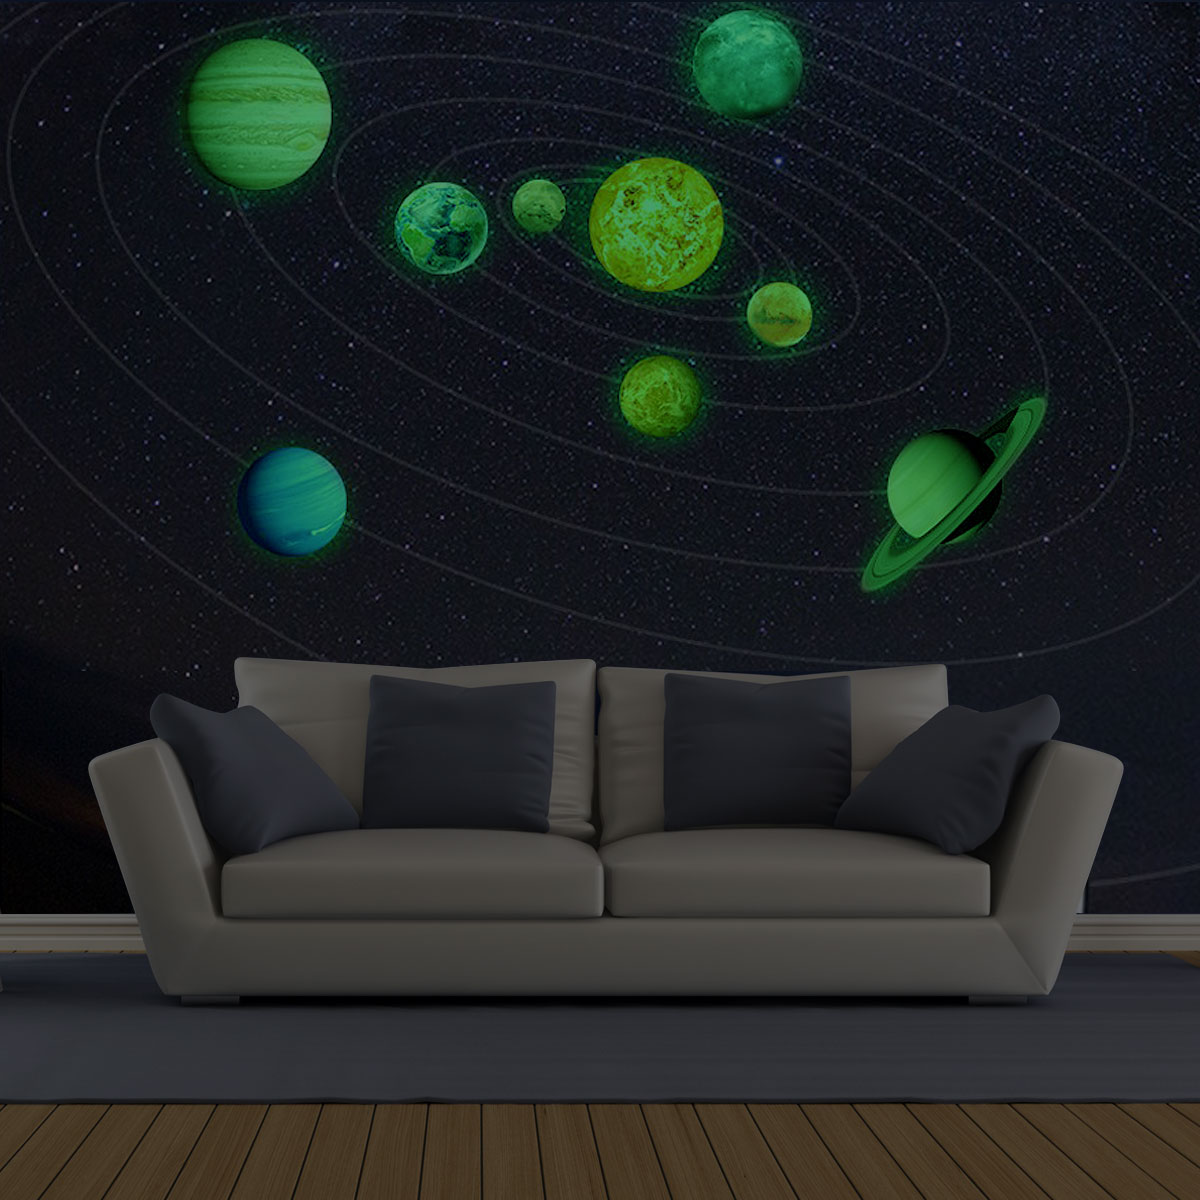 Details About Galaxy Planet Space Solar System Wall Stickers Art Baby Room Diy Decor Decal